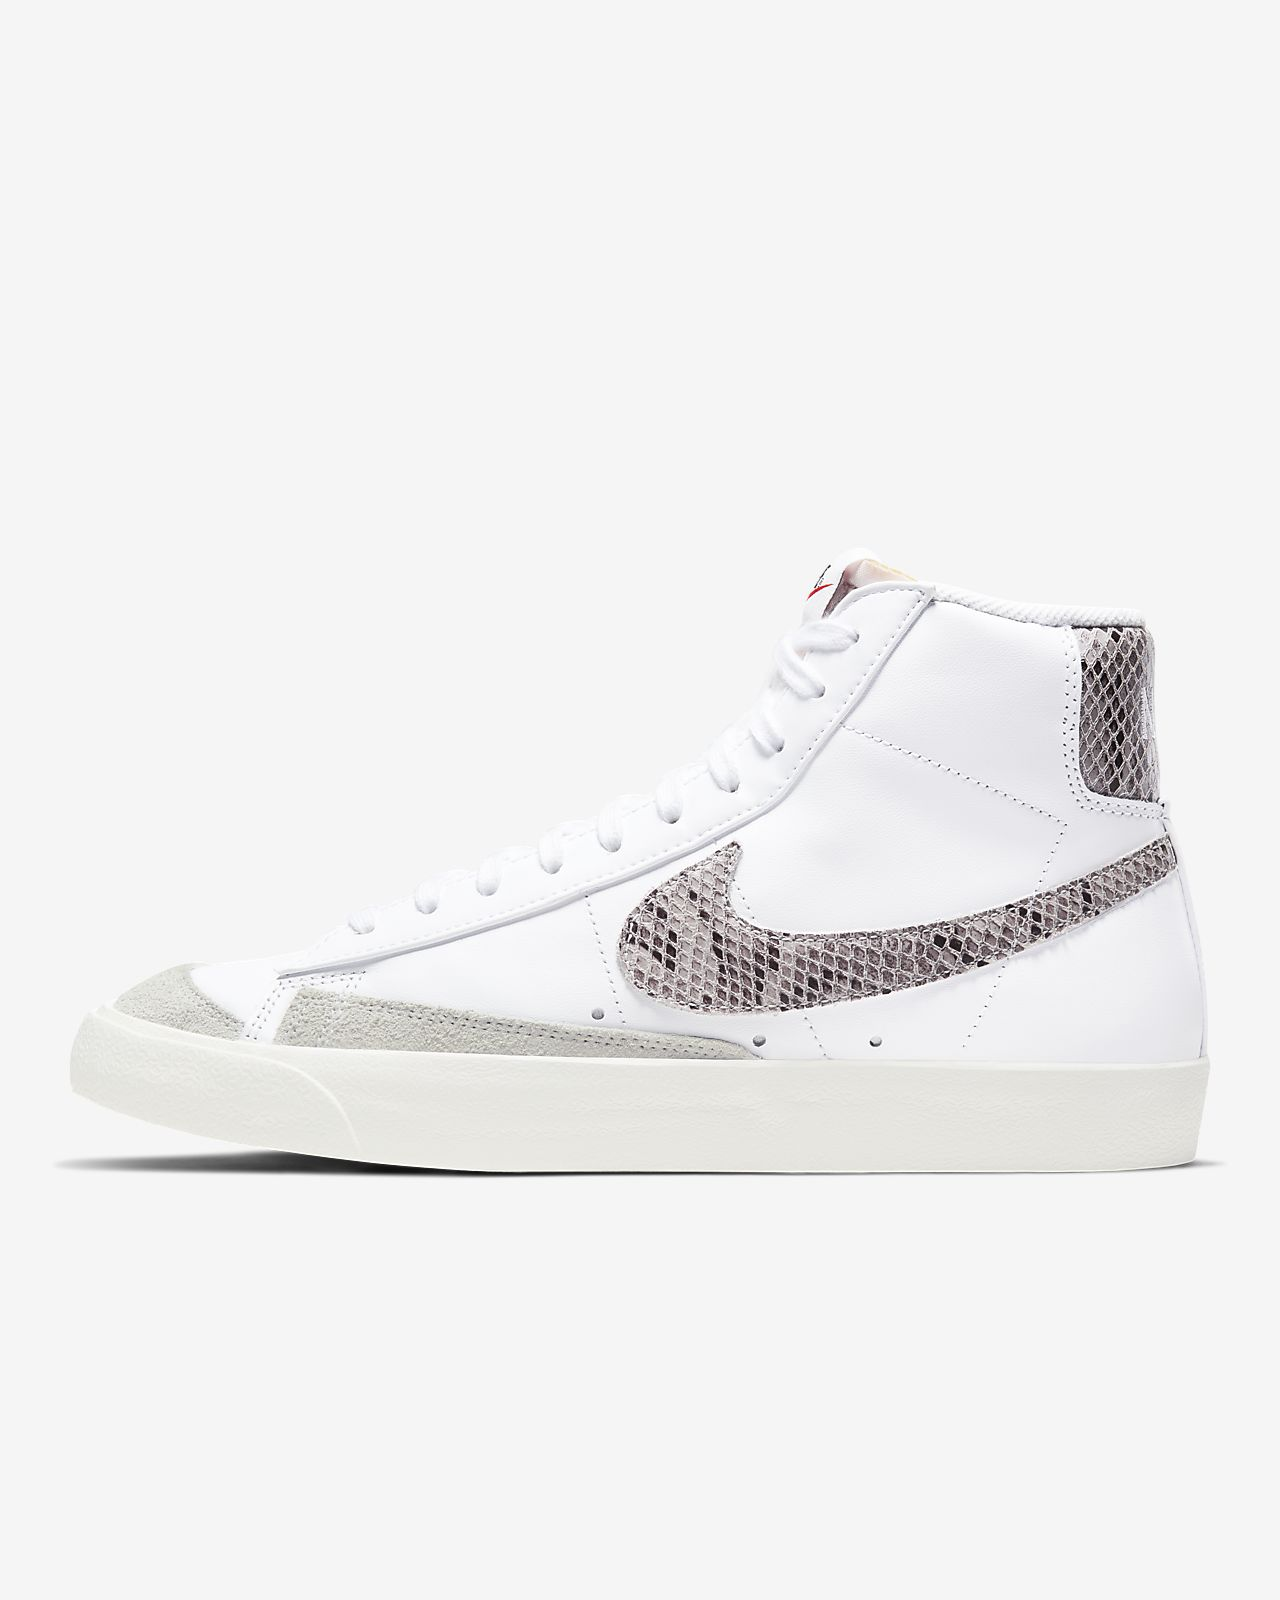 official shop best price first look Chaussure Nike Blazer Mid 77 Vintage. Nike FR